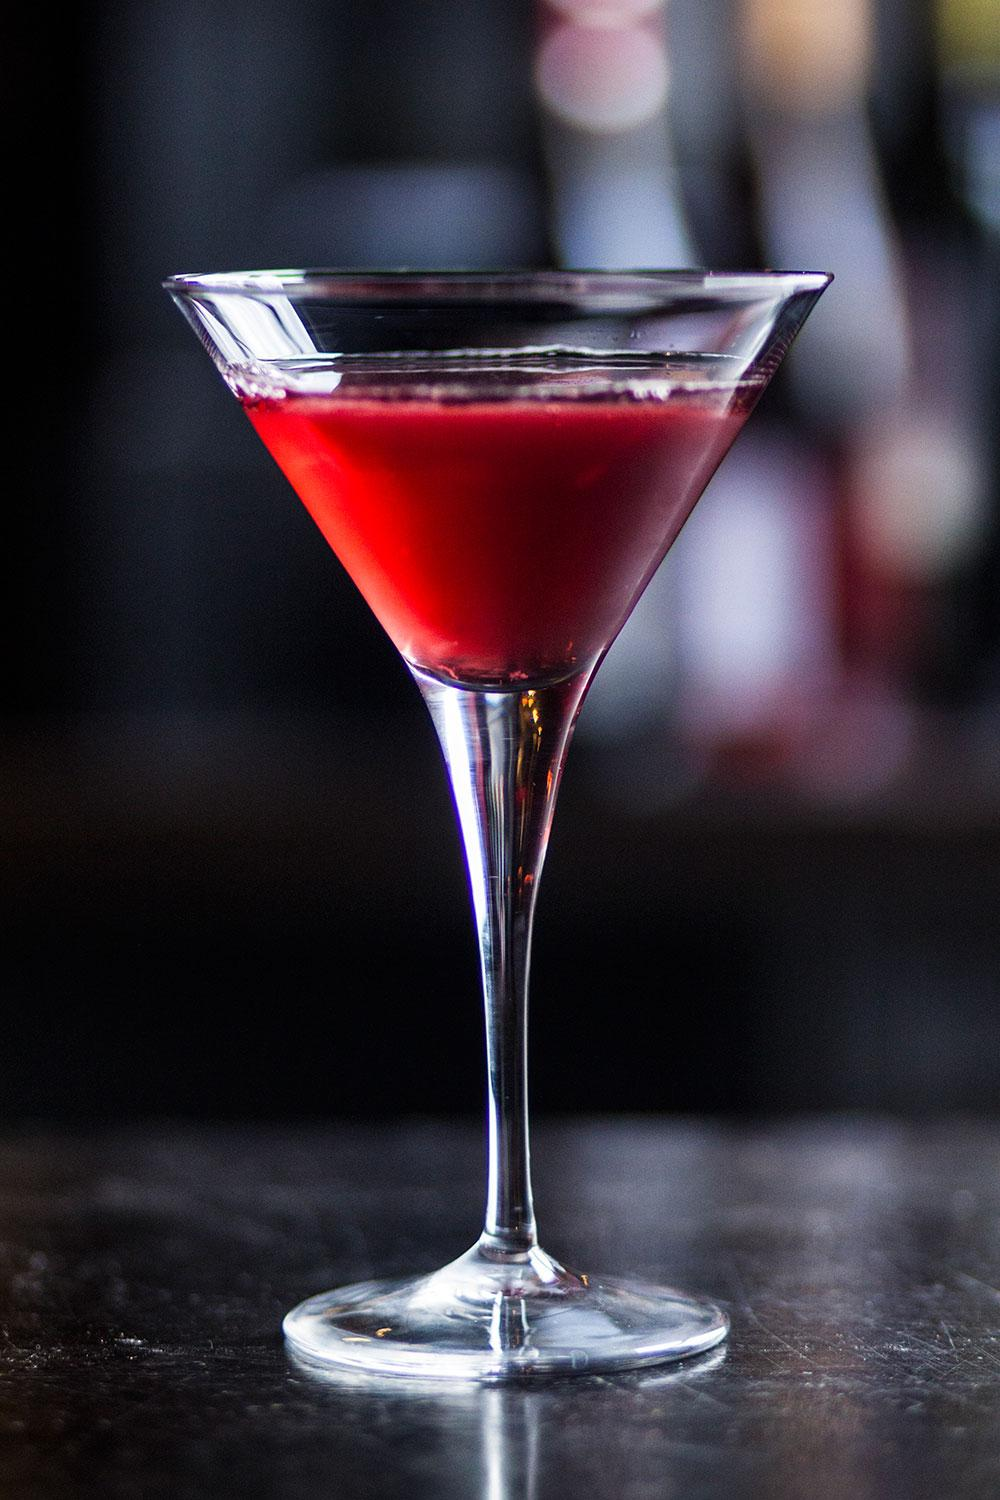 Delicious Halloween cocktails to impress guests this weekend http://t.co/JPwkRlD9jO http://t.co/gCpvZVivN7